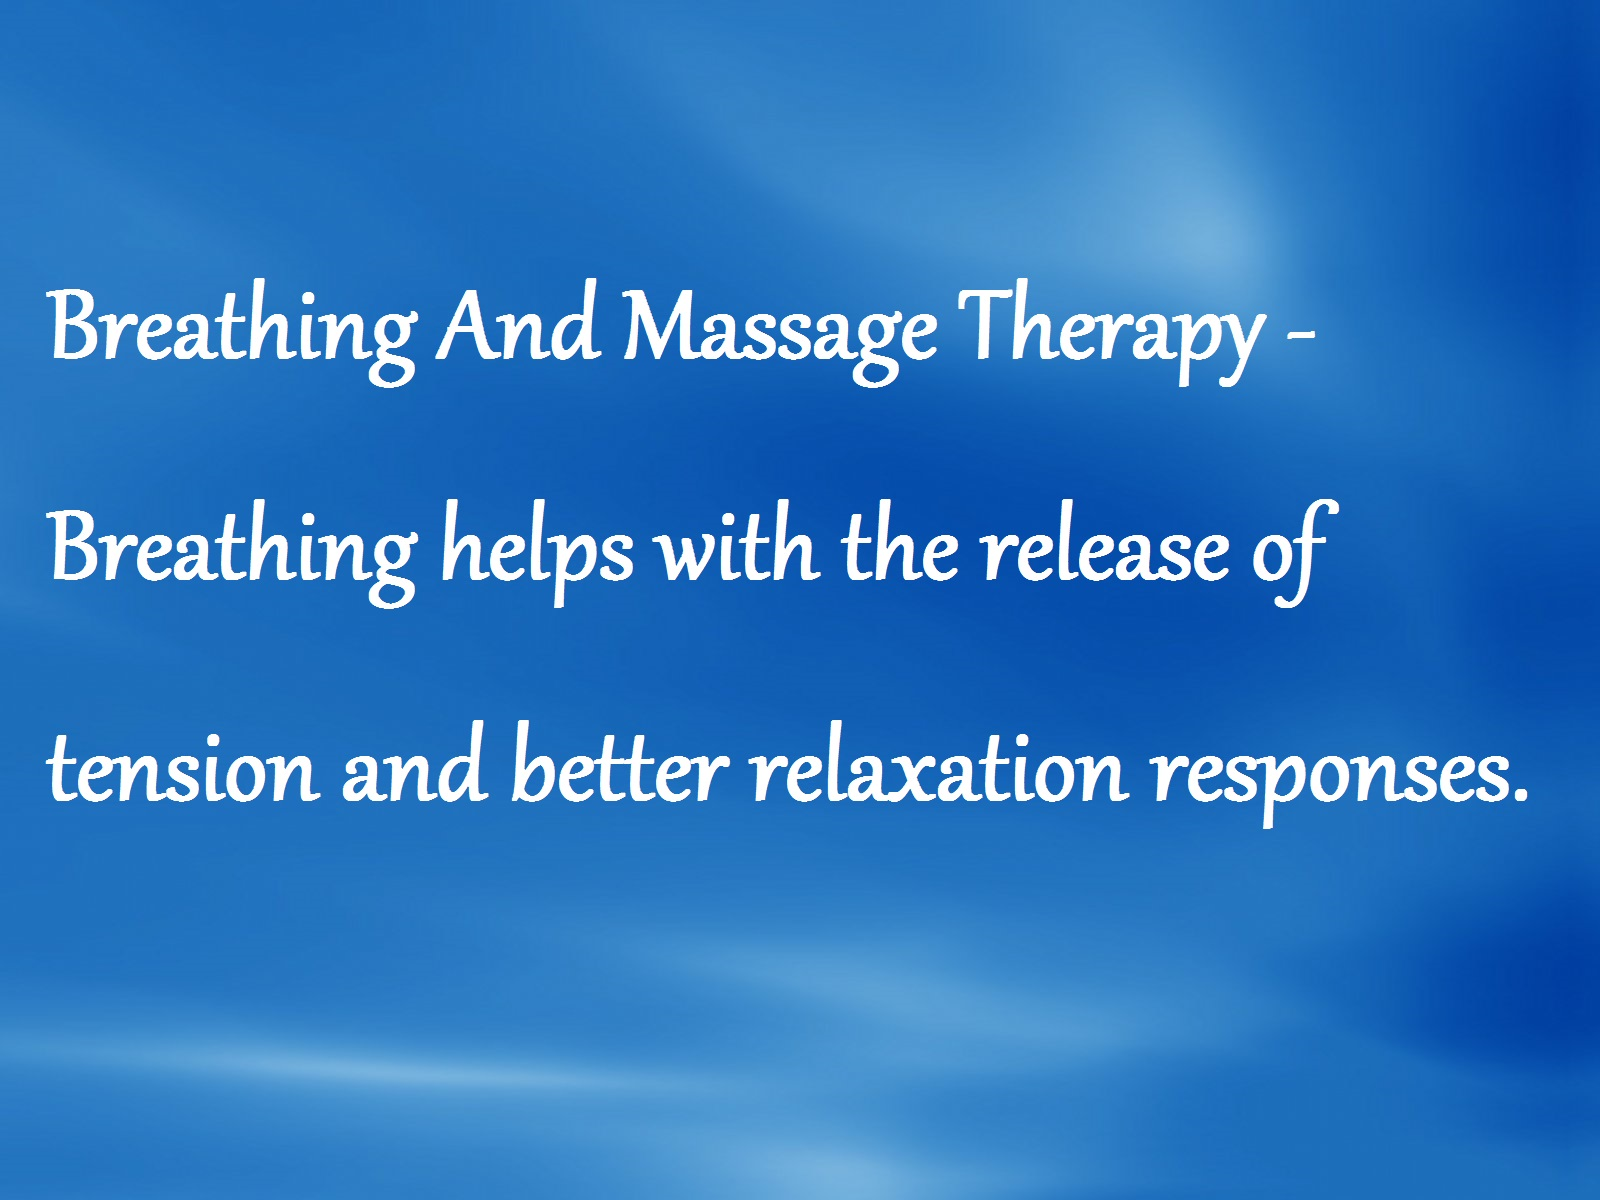 Sunstone Registered Massage Therapy - Breathing And Massage Therapy